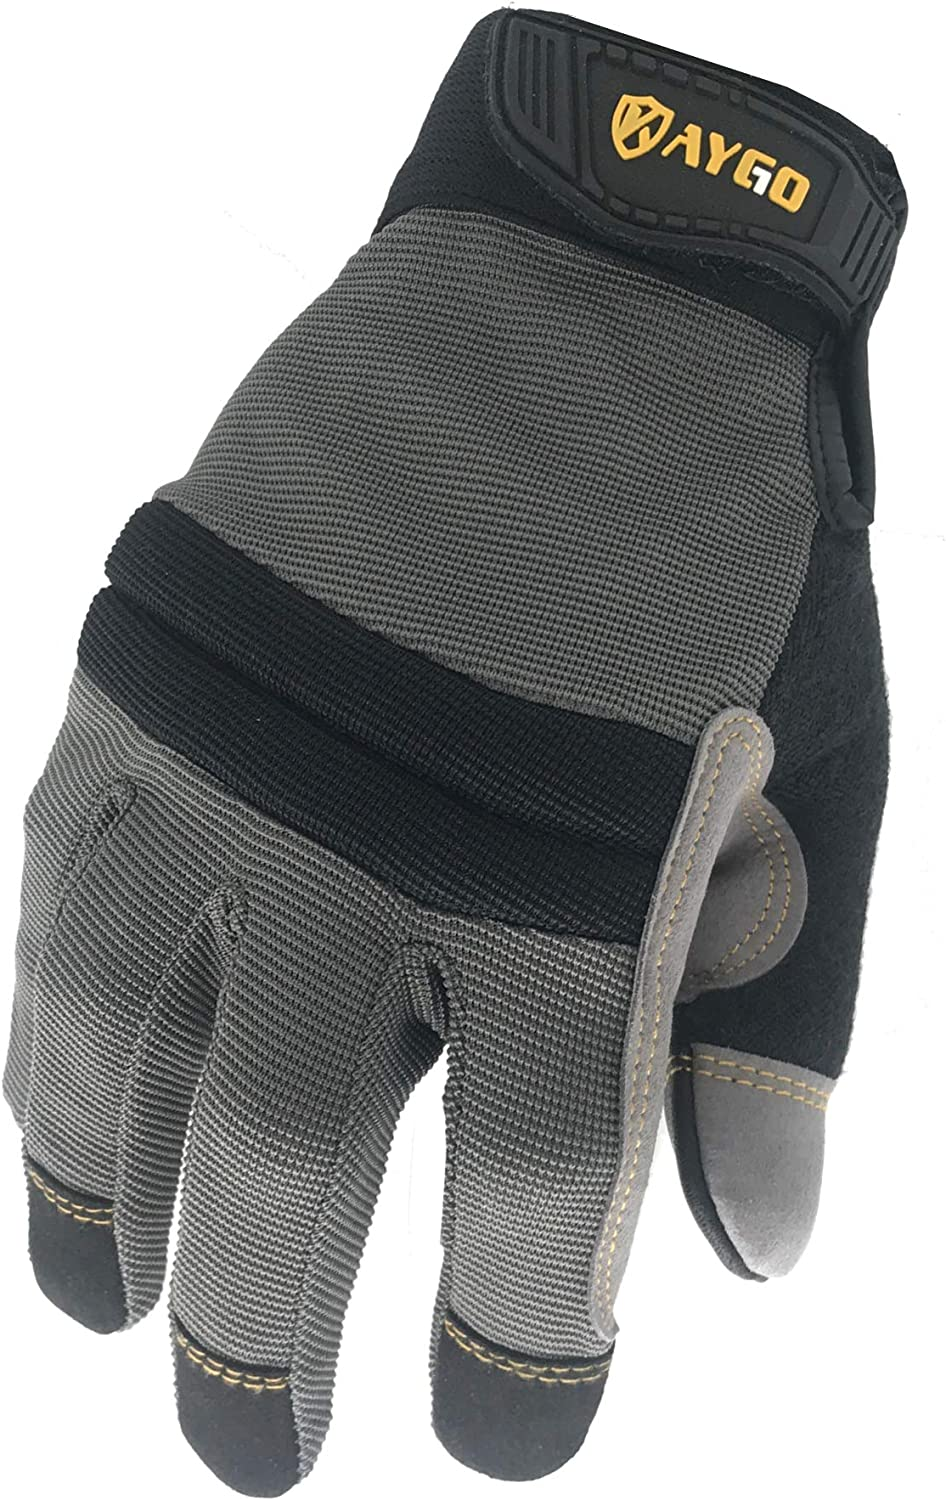 Mechanic Gloves-KAYGO KG125M Safety Working Gloves for Men, Excellent Grip,Heavy Duty,Improved Dexterity,Ideal for working on cars and outdoor jobs